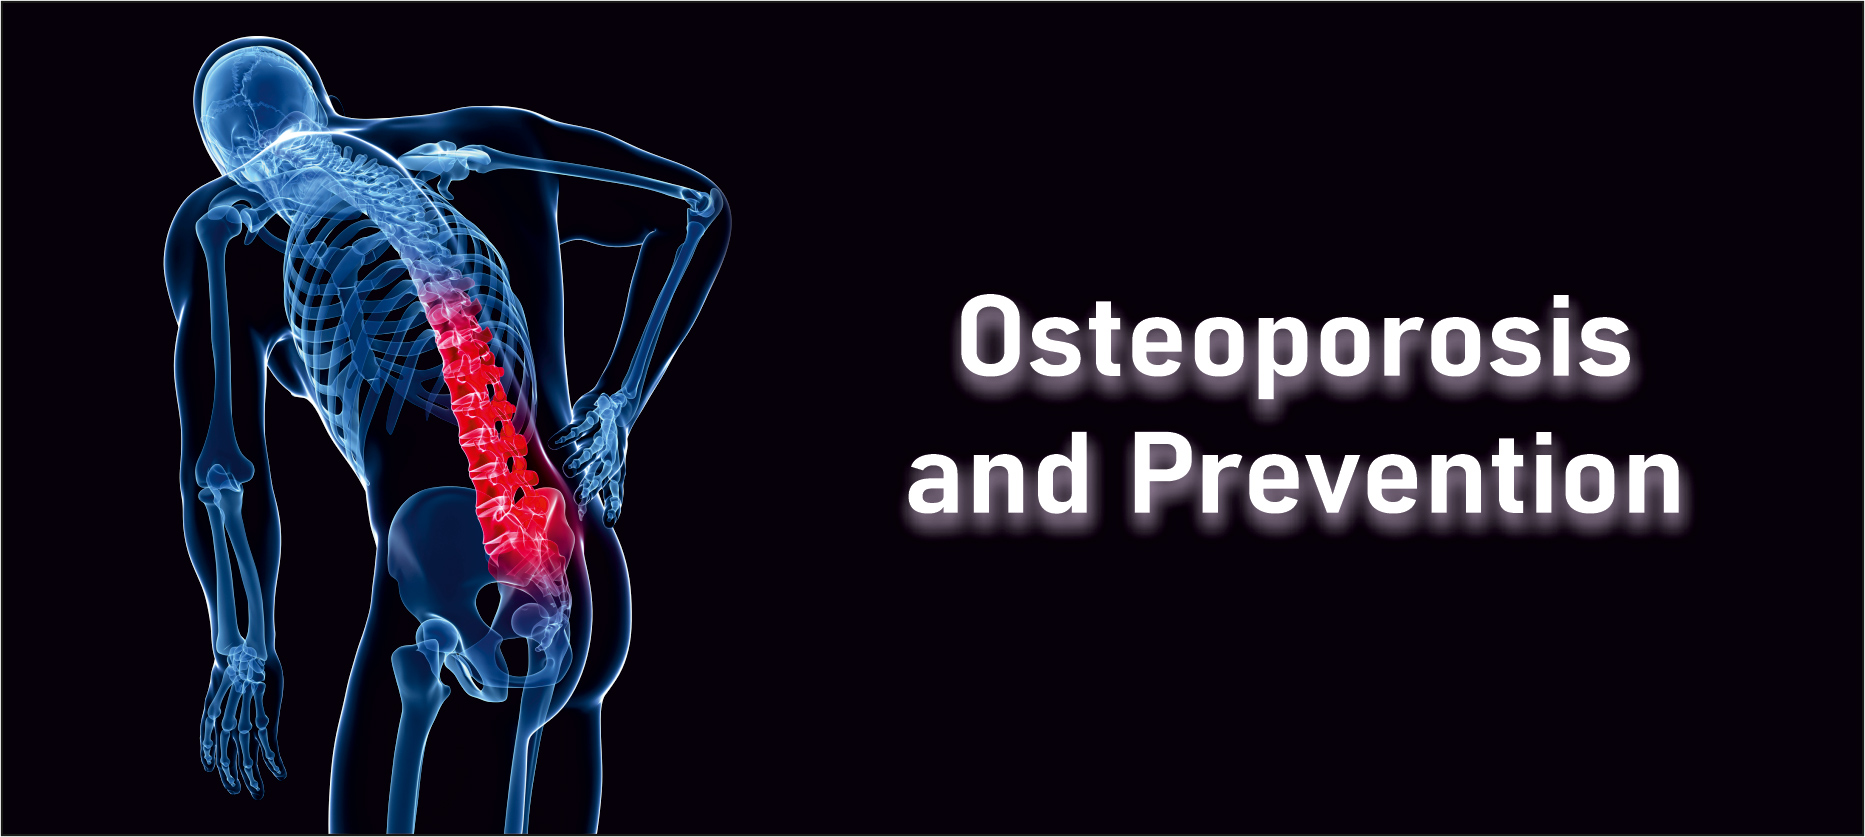 Osteoporosis and its Prevention